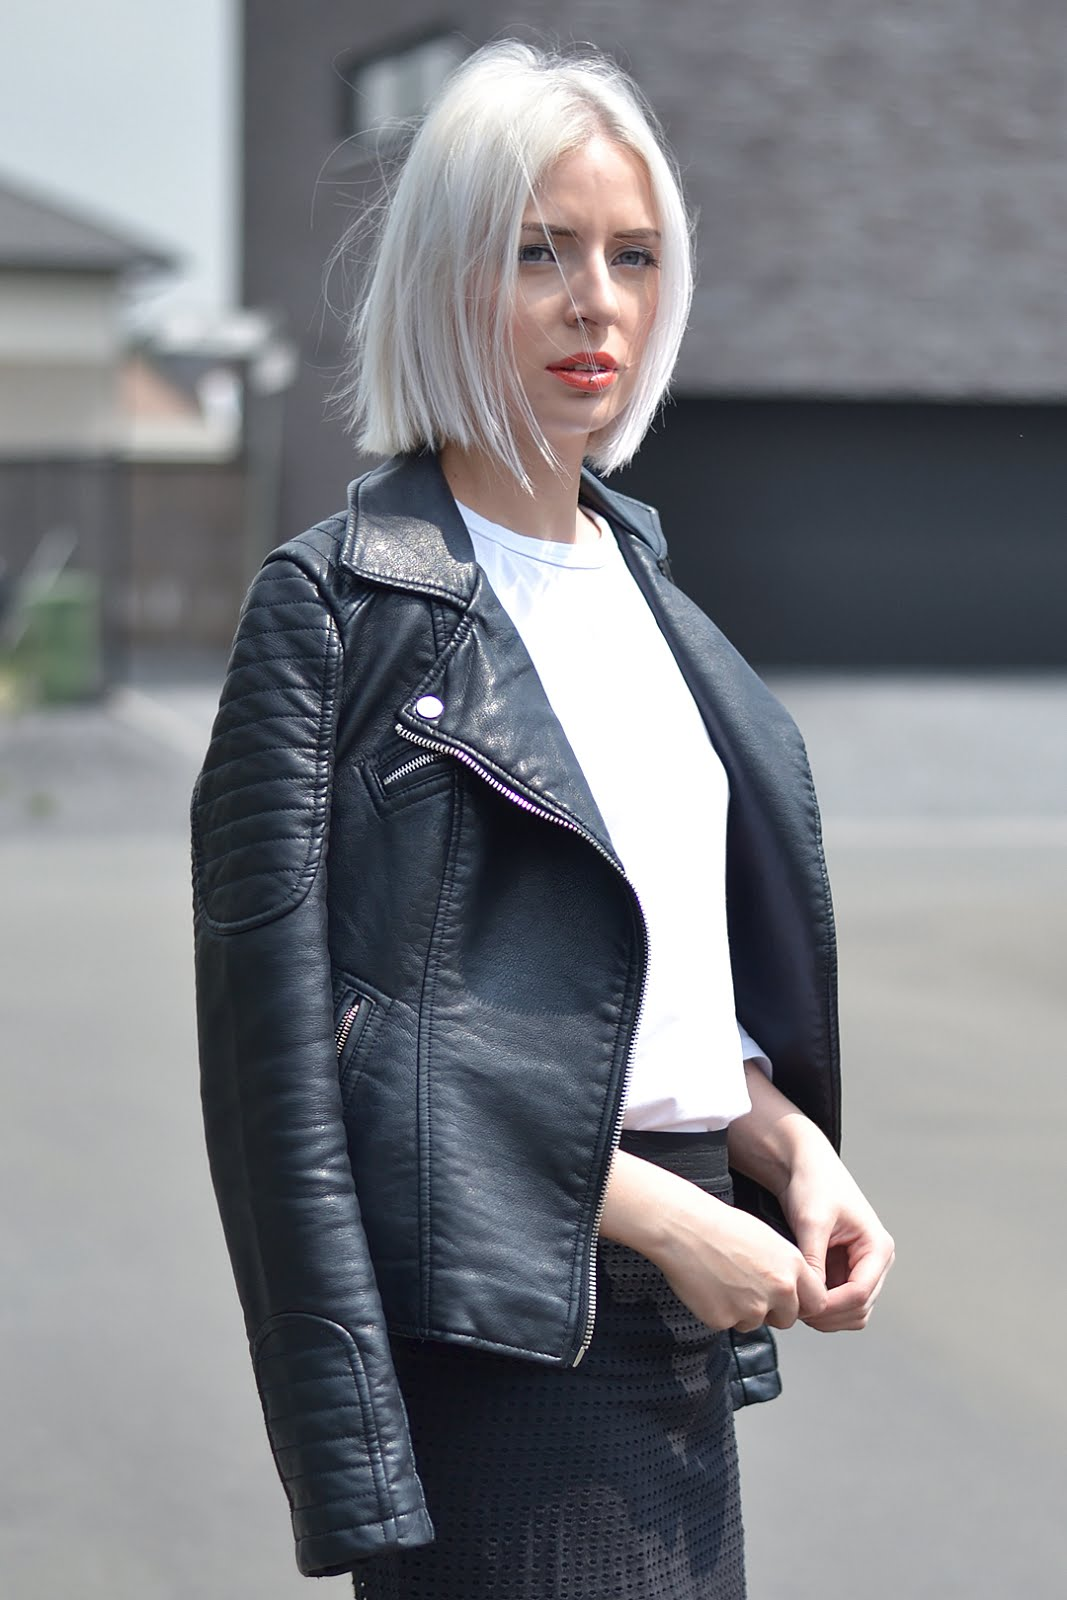 Leather jacket, black and white outfit, mesh skirt, dr martens boots, street style, belgian fashion blogger, belgische mode blogger